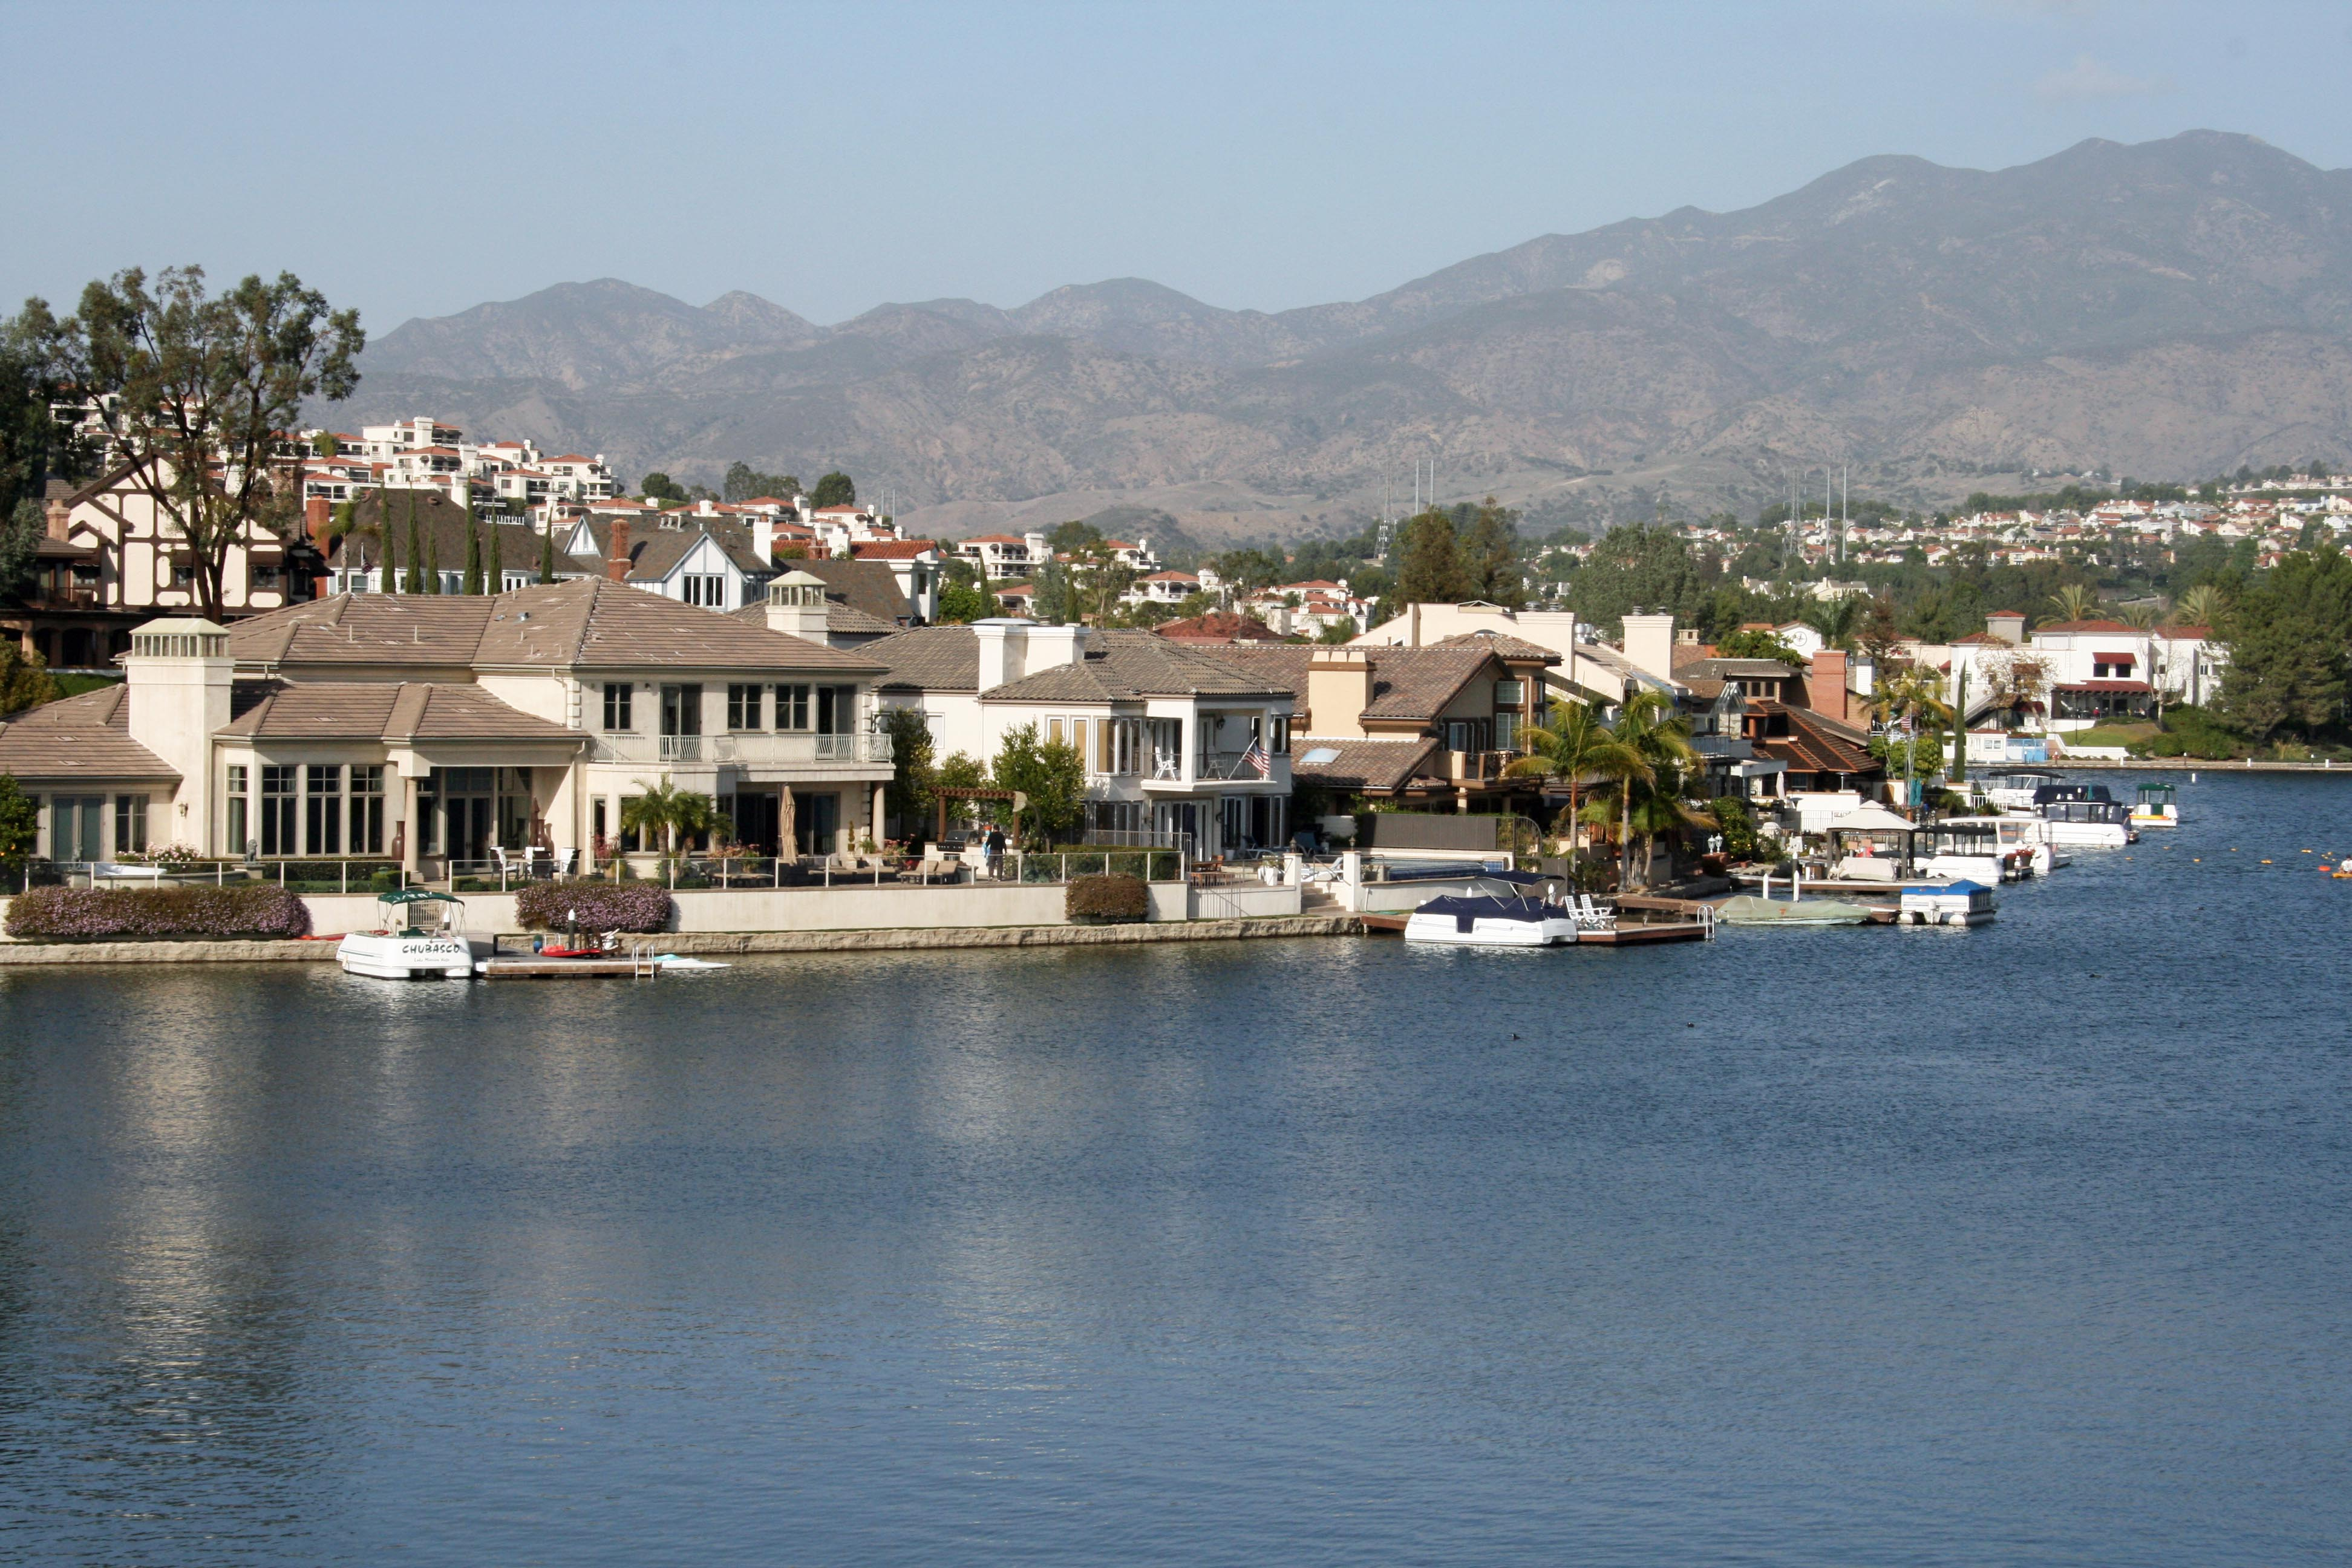 Lake Mission Viejo!